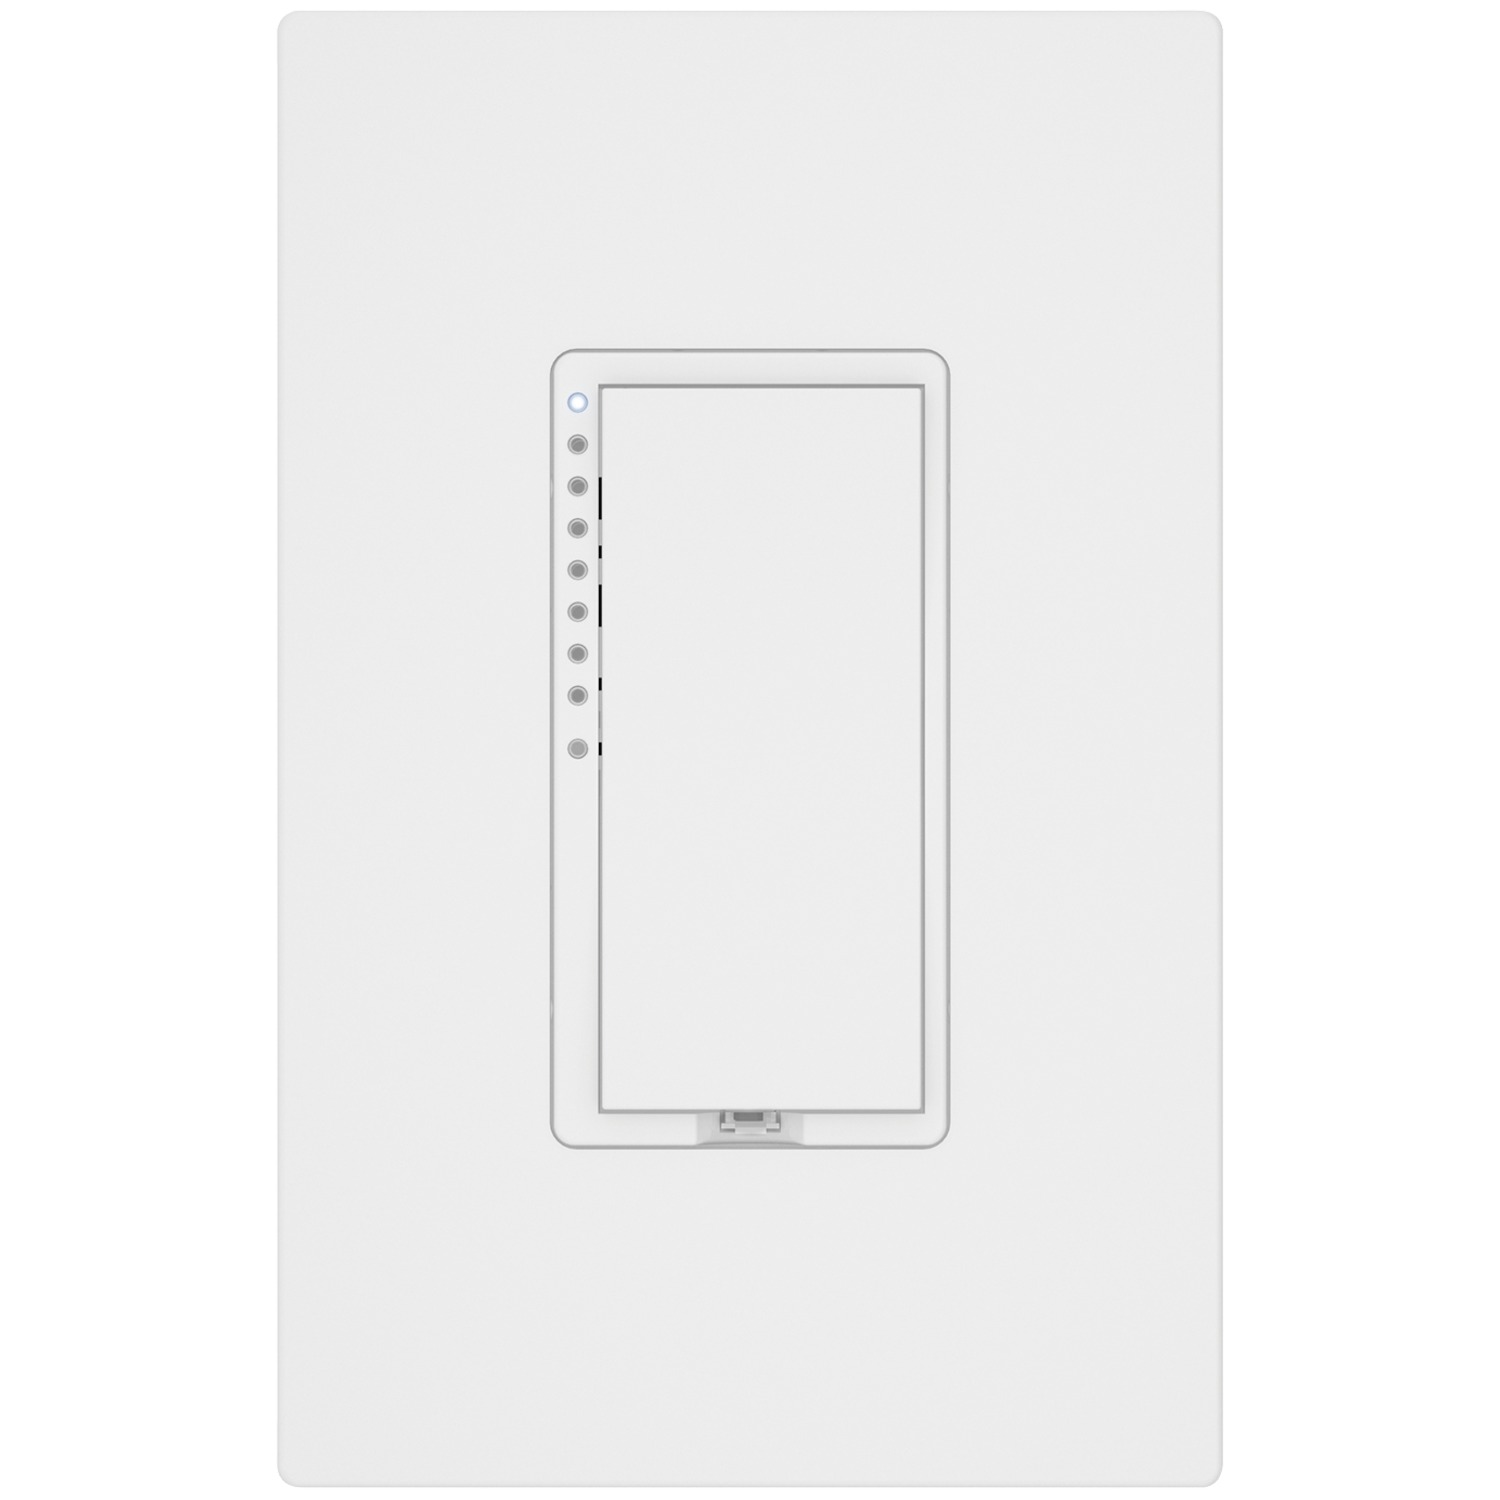 Insteon Dimmer Switch - White